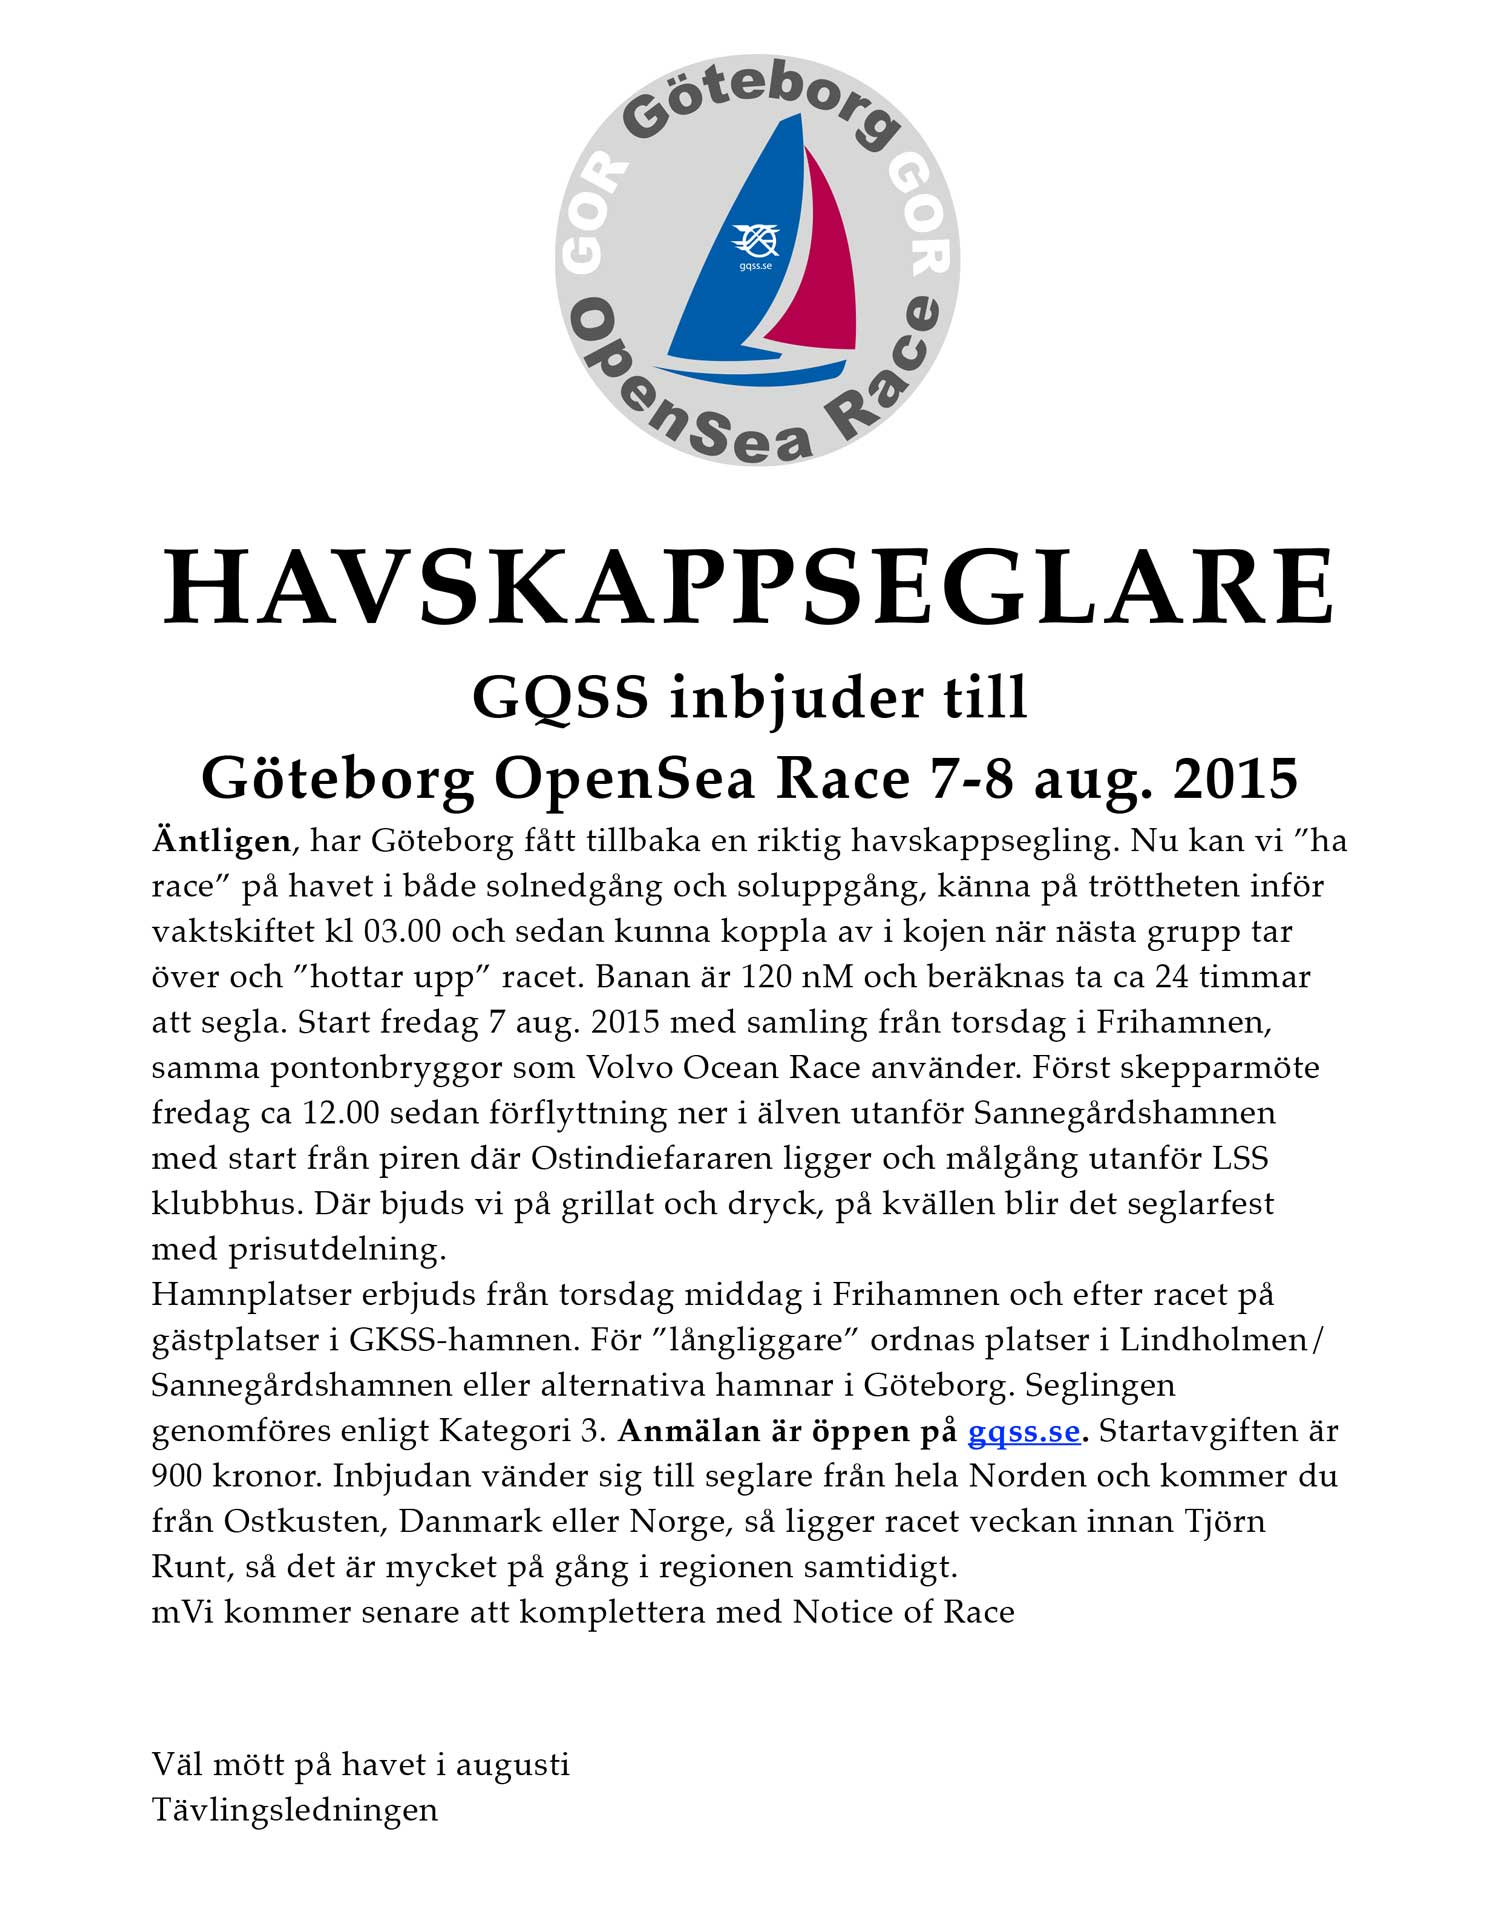 Göteborg OpenSea Race 7-8 aug